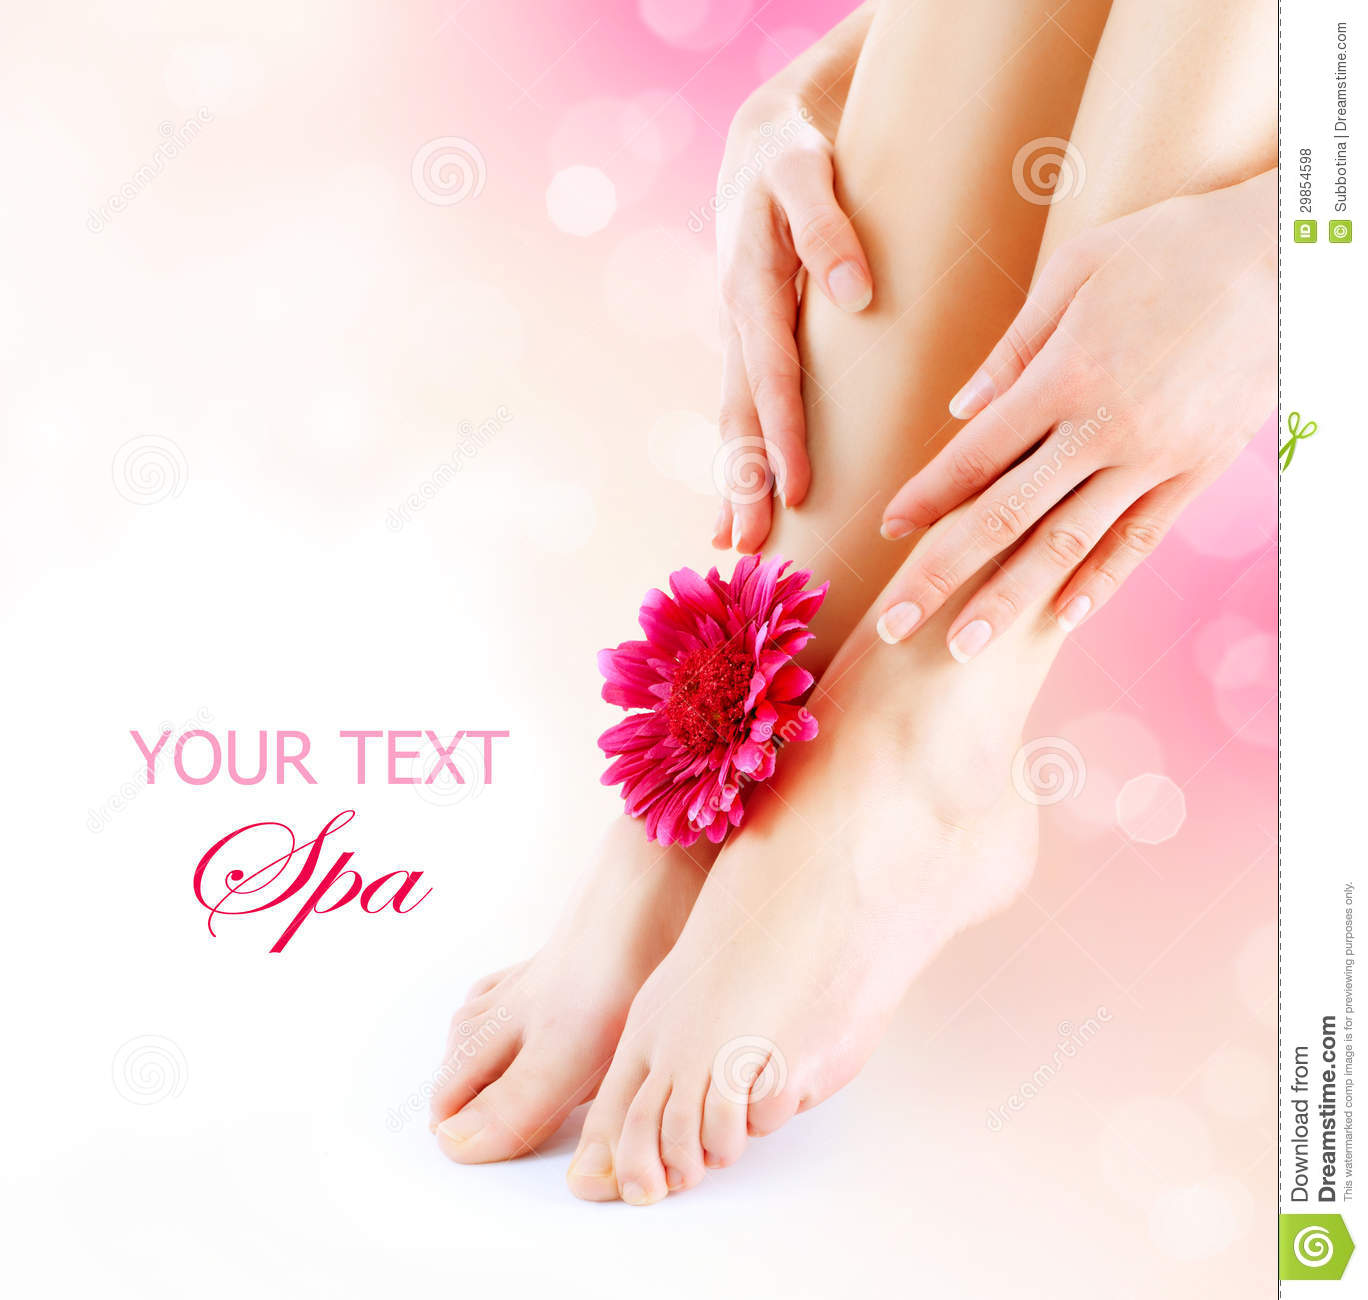 Free Manicure Beauty Hands Makeover: Womans Feet And Hands Stock Photo. Image Of Lady, Bare